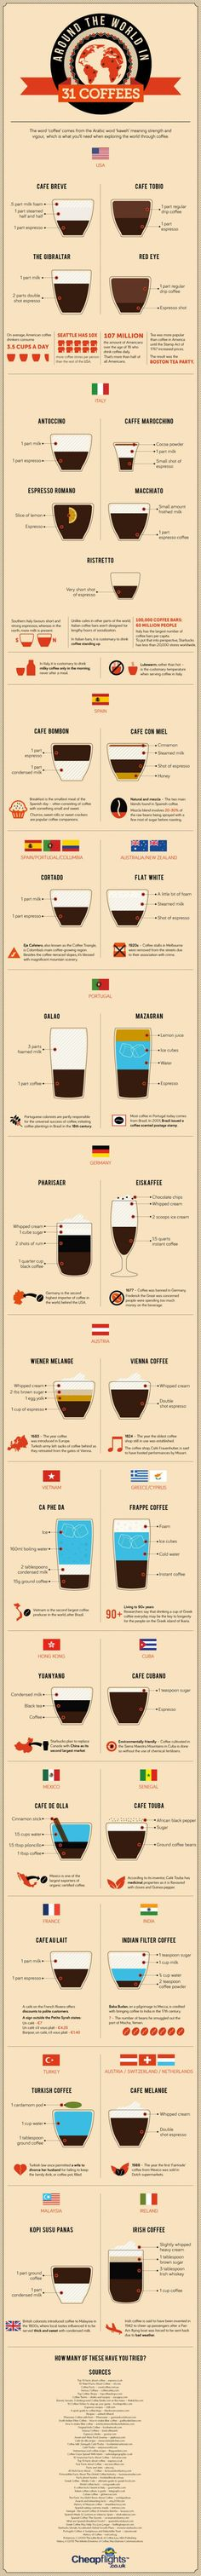 Infographic: 31 Ways Coffee Is Made Around The World. Our Minds Are Blown.